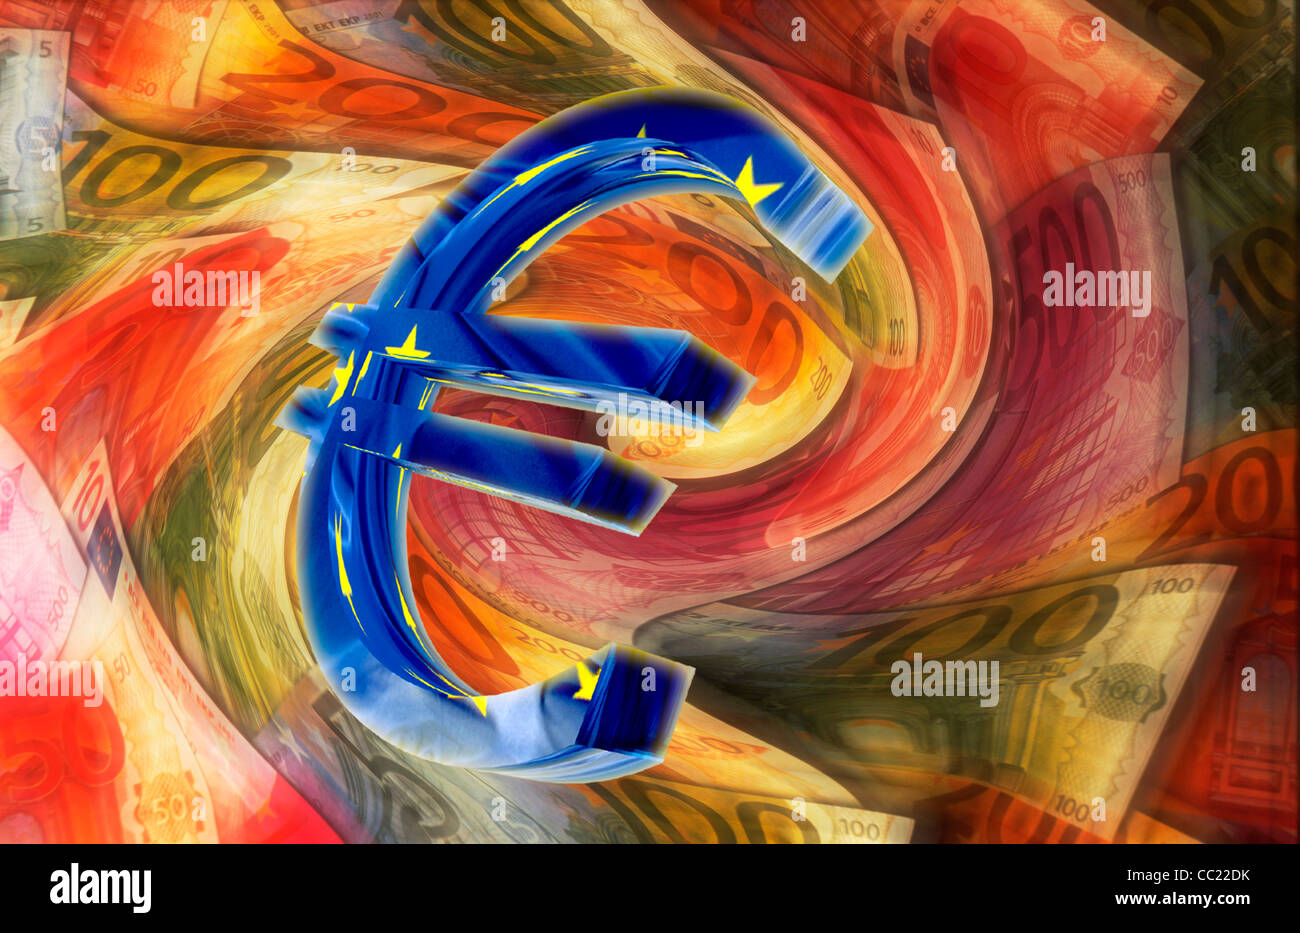 Euro sign in front of blurred euro banknotes, illustration - Stock Image